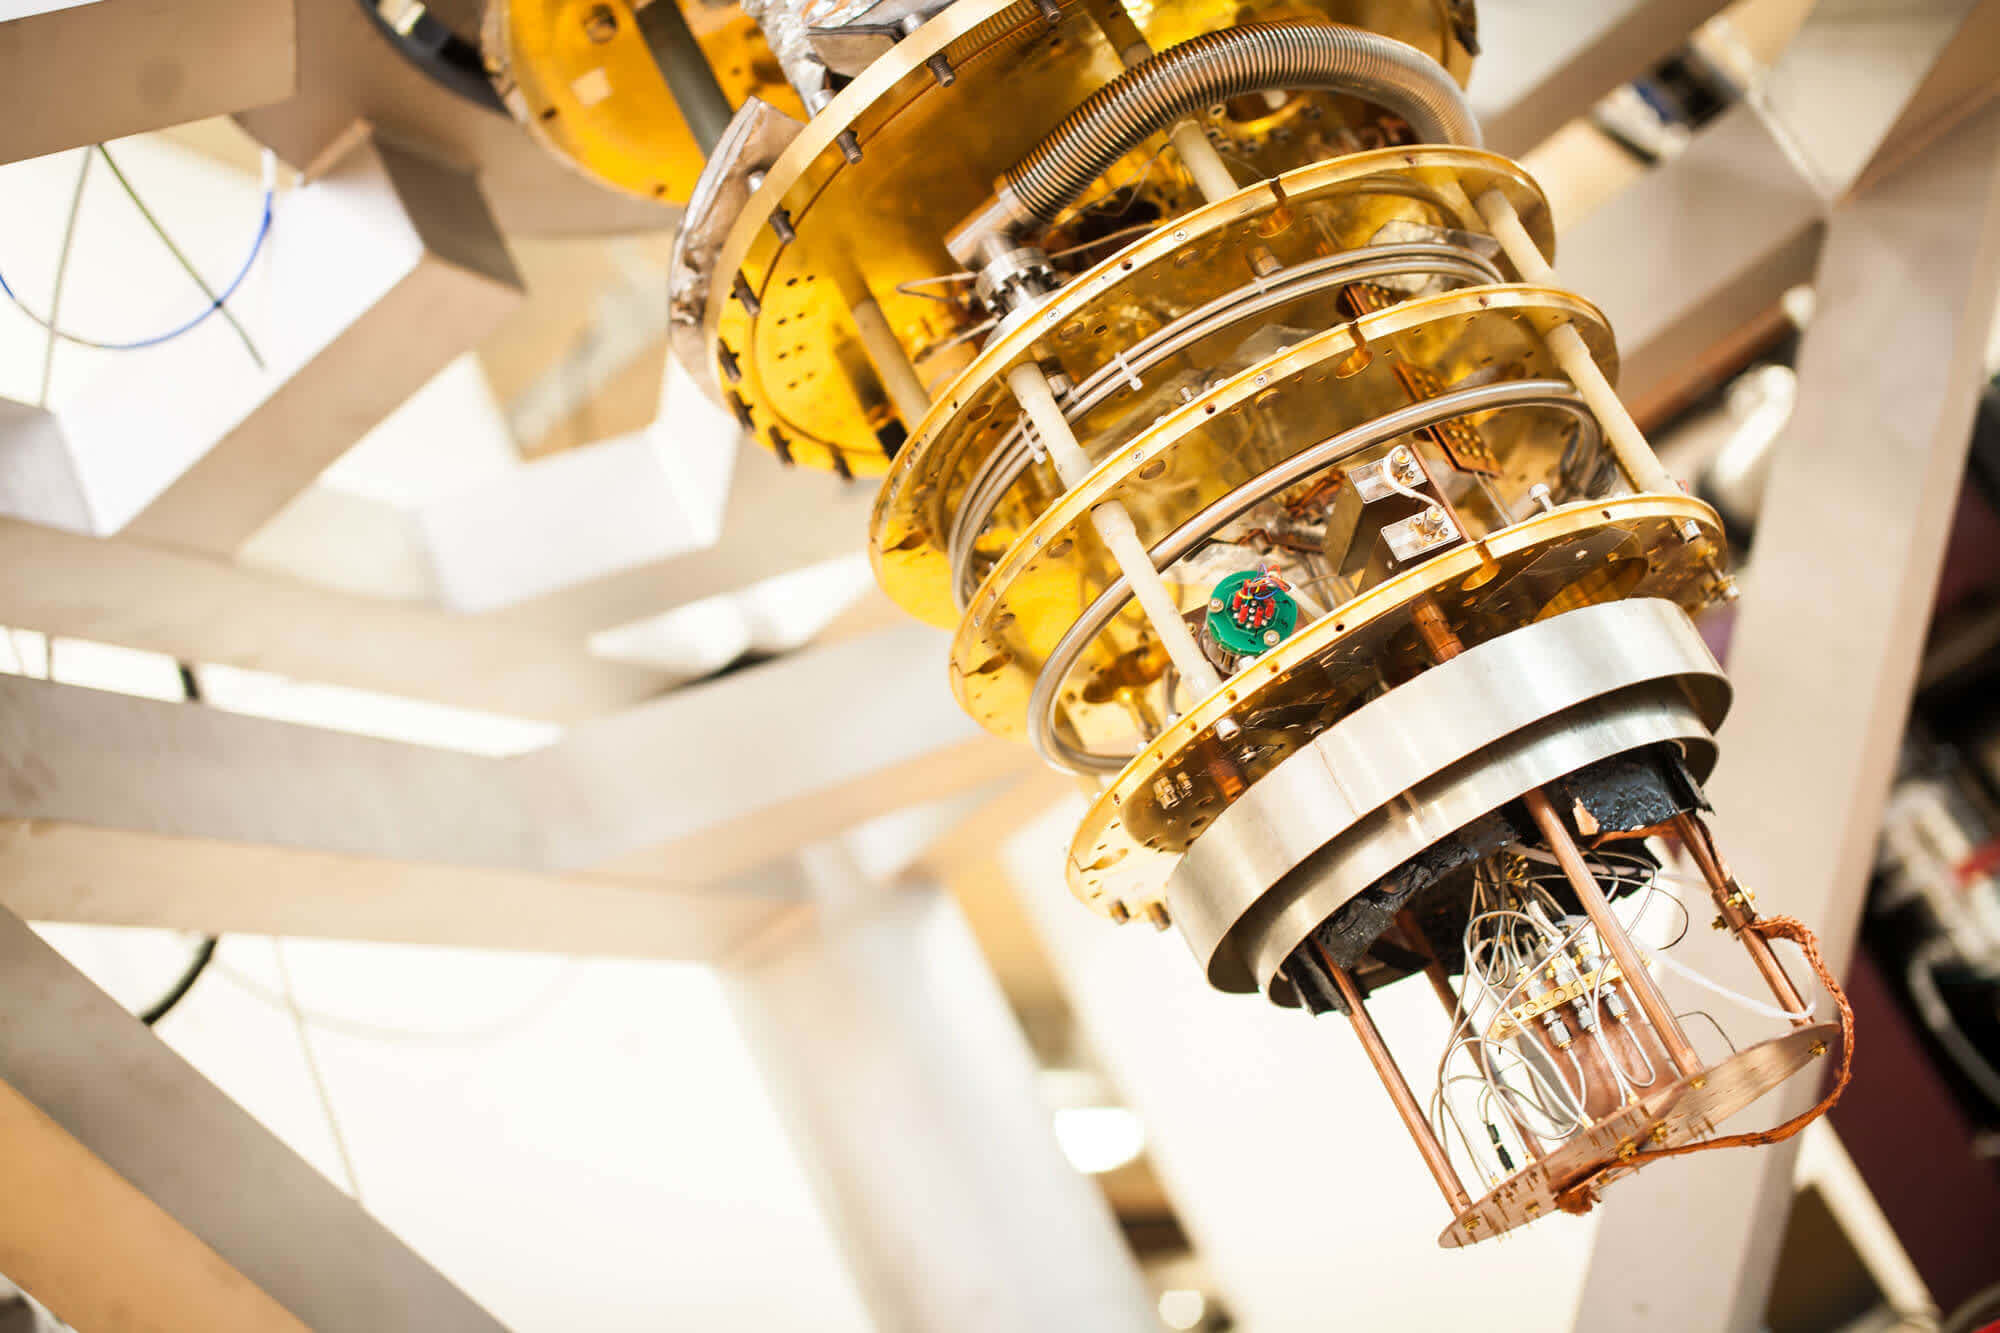 Investors are dumping money into quantum computing firms in hopes of a big payday